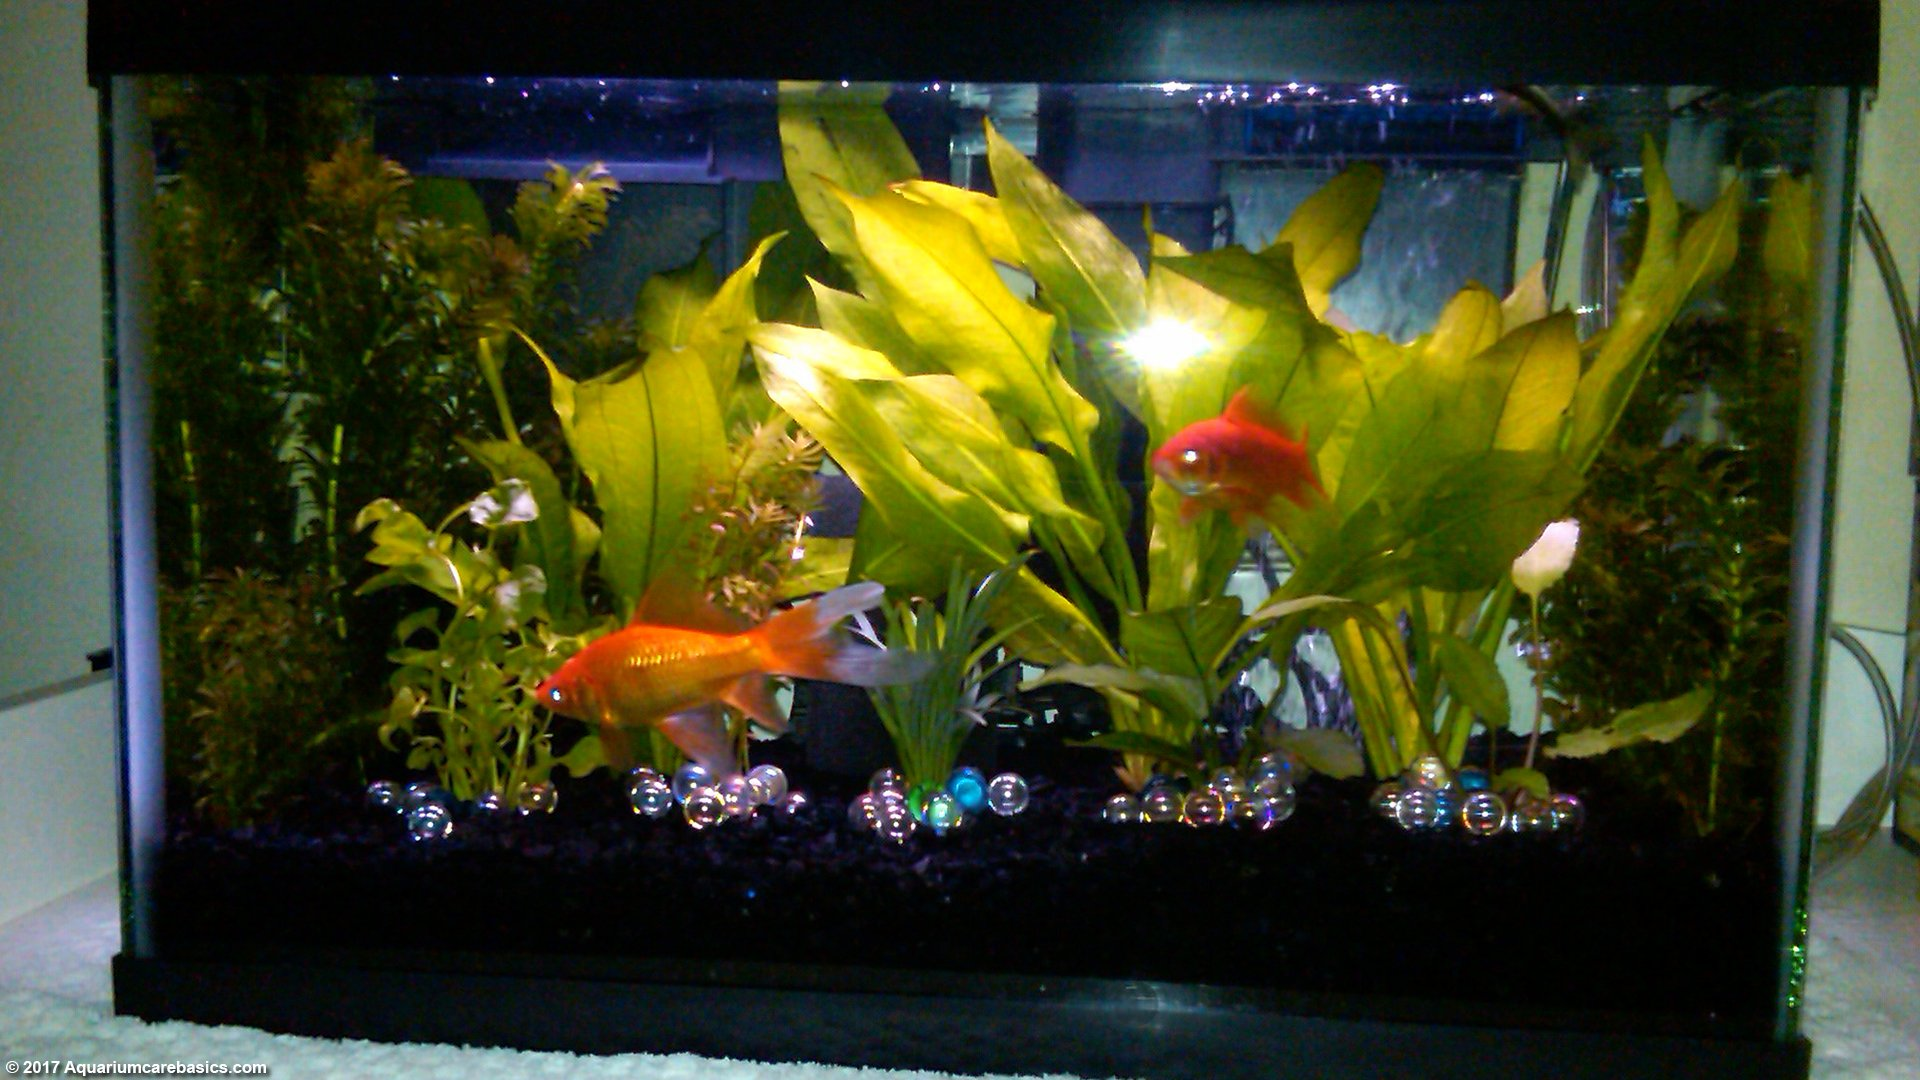 Etonnant 10 Gallon Aquarium Setup Is Not The Best For Goldfish. 10 Gallon Aquarium  Setup Is Not The Best For Goldfish